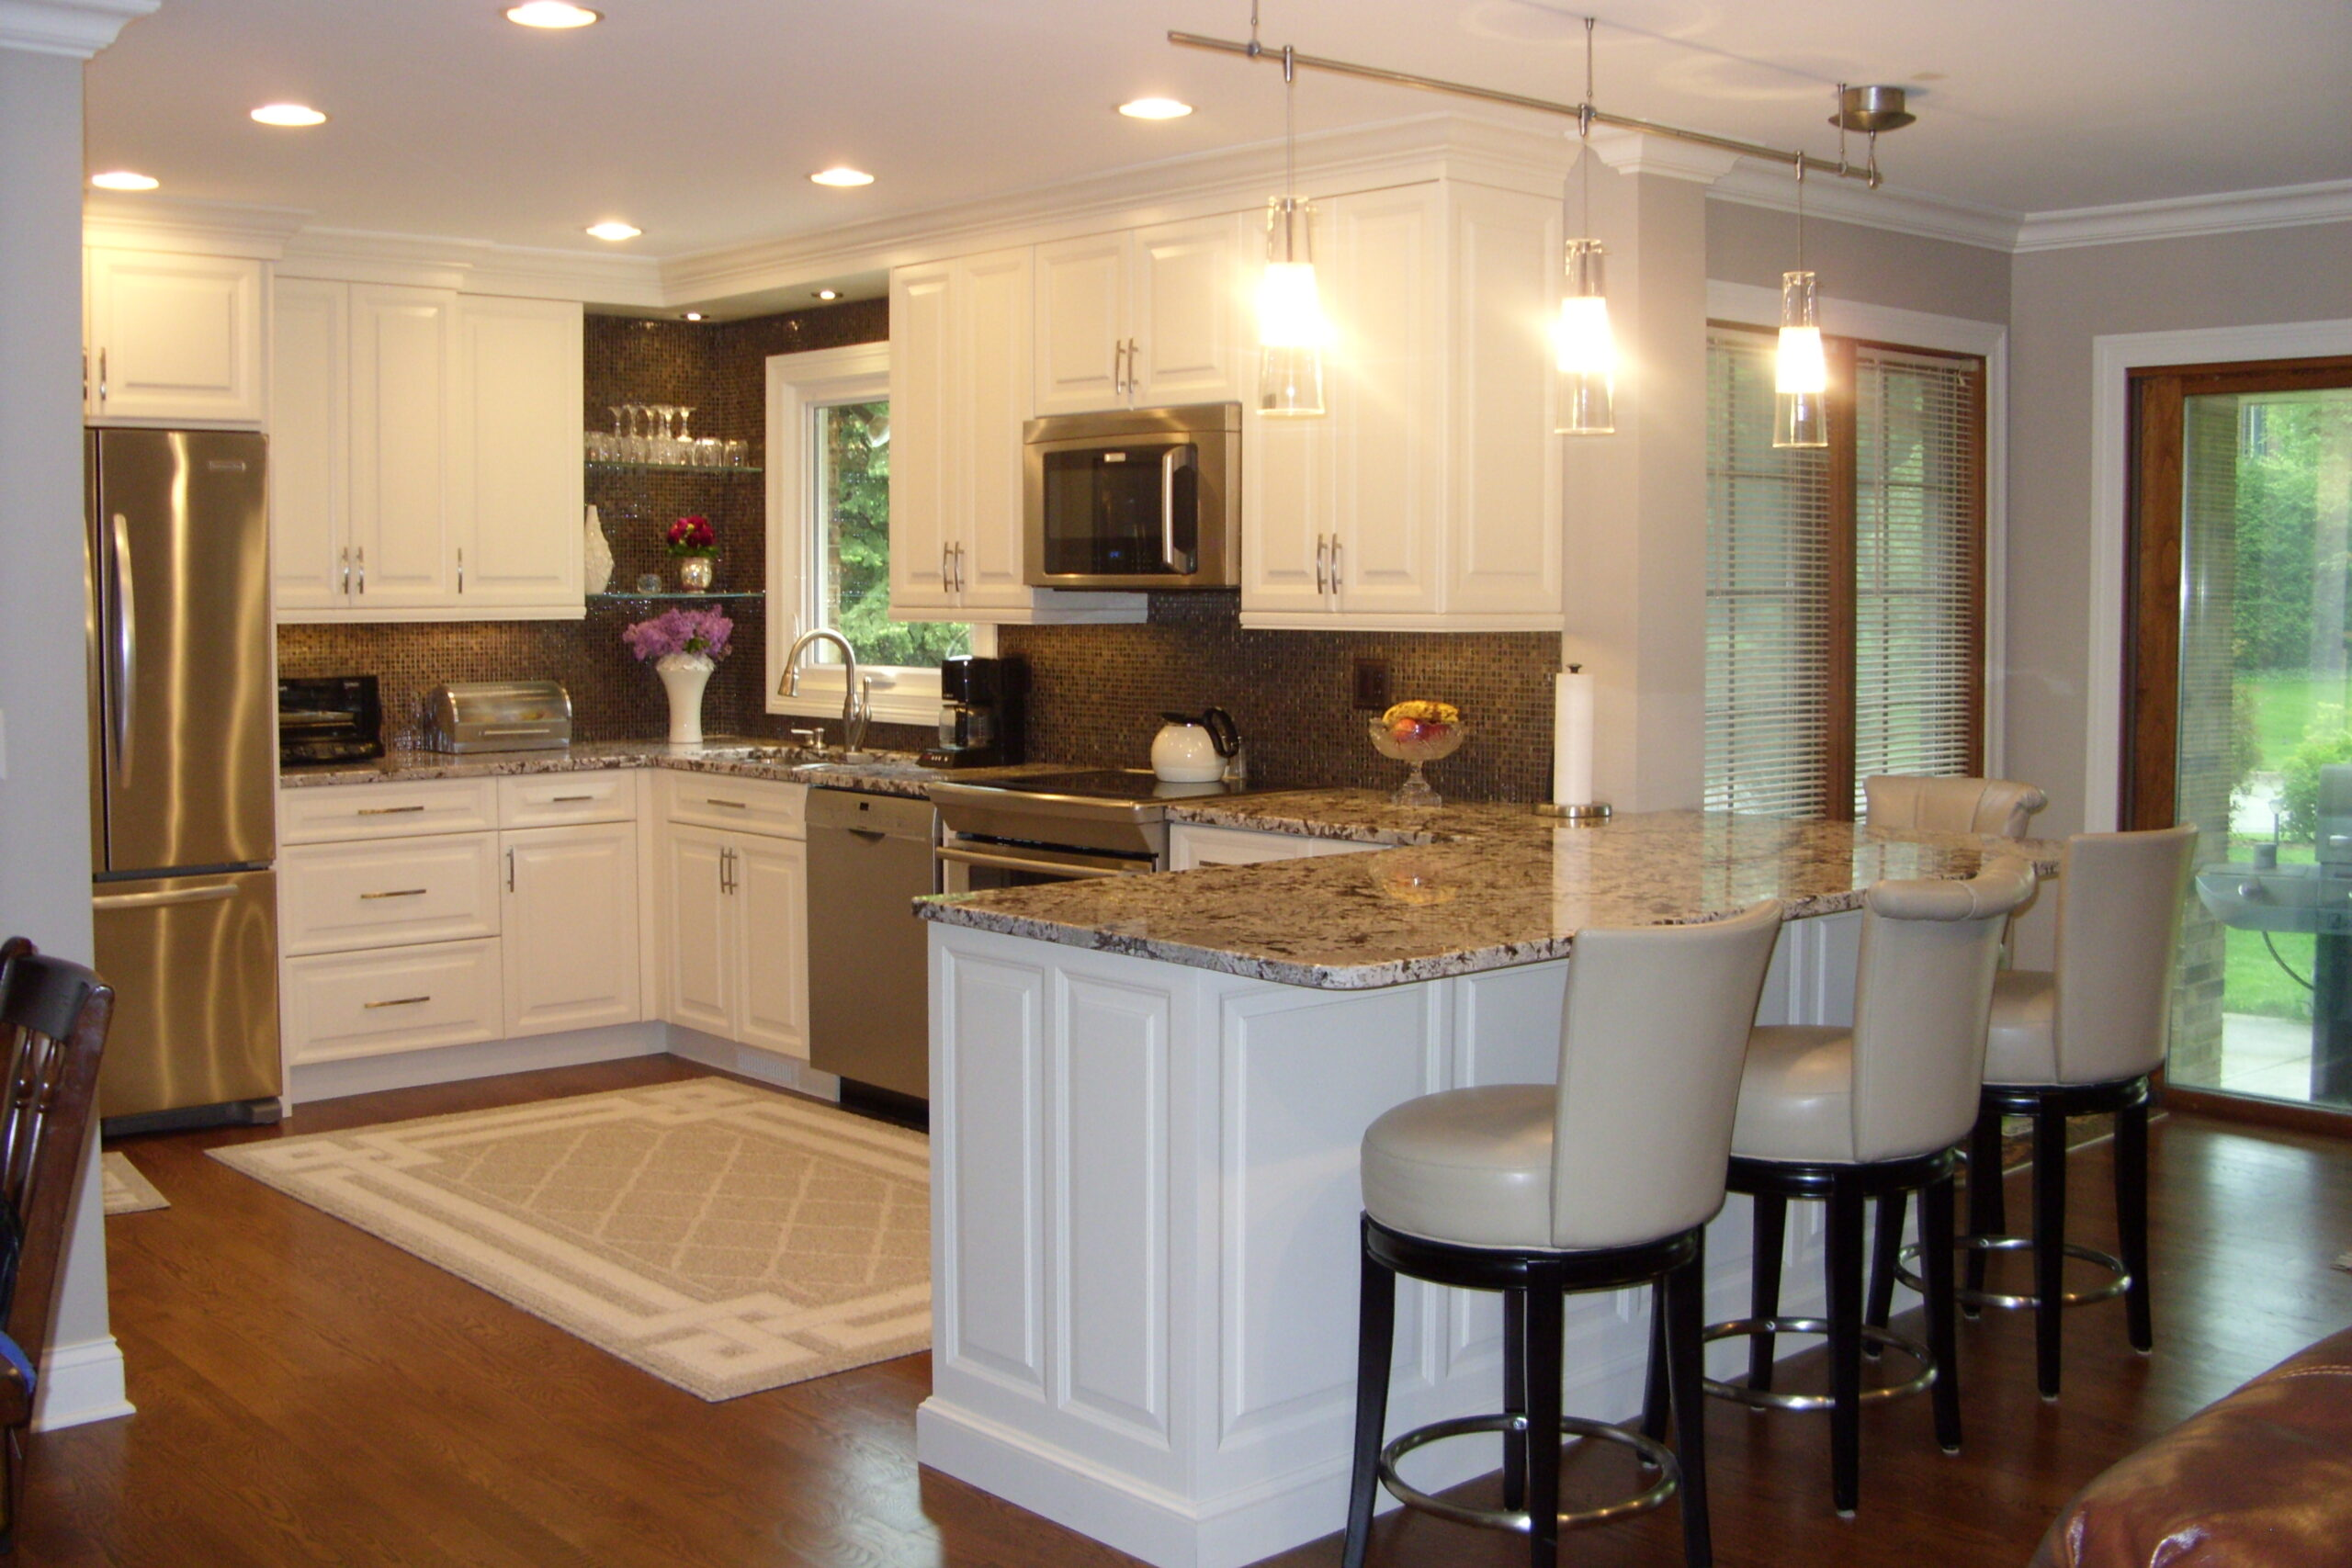 Dds design services for Kitchen ideas ranch style house